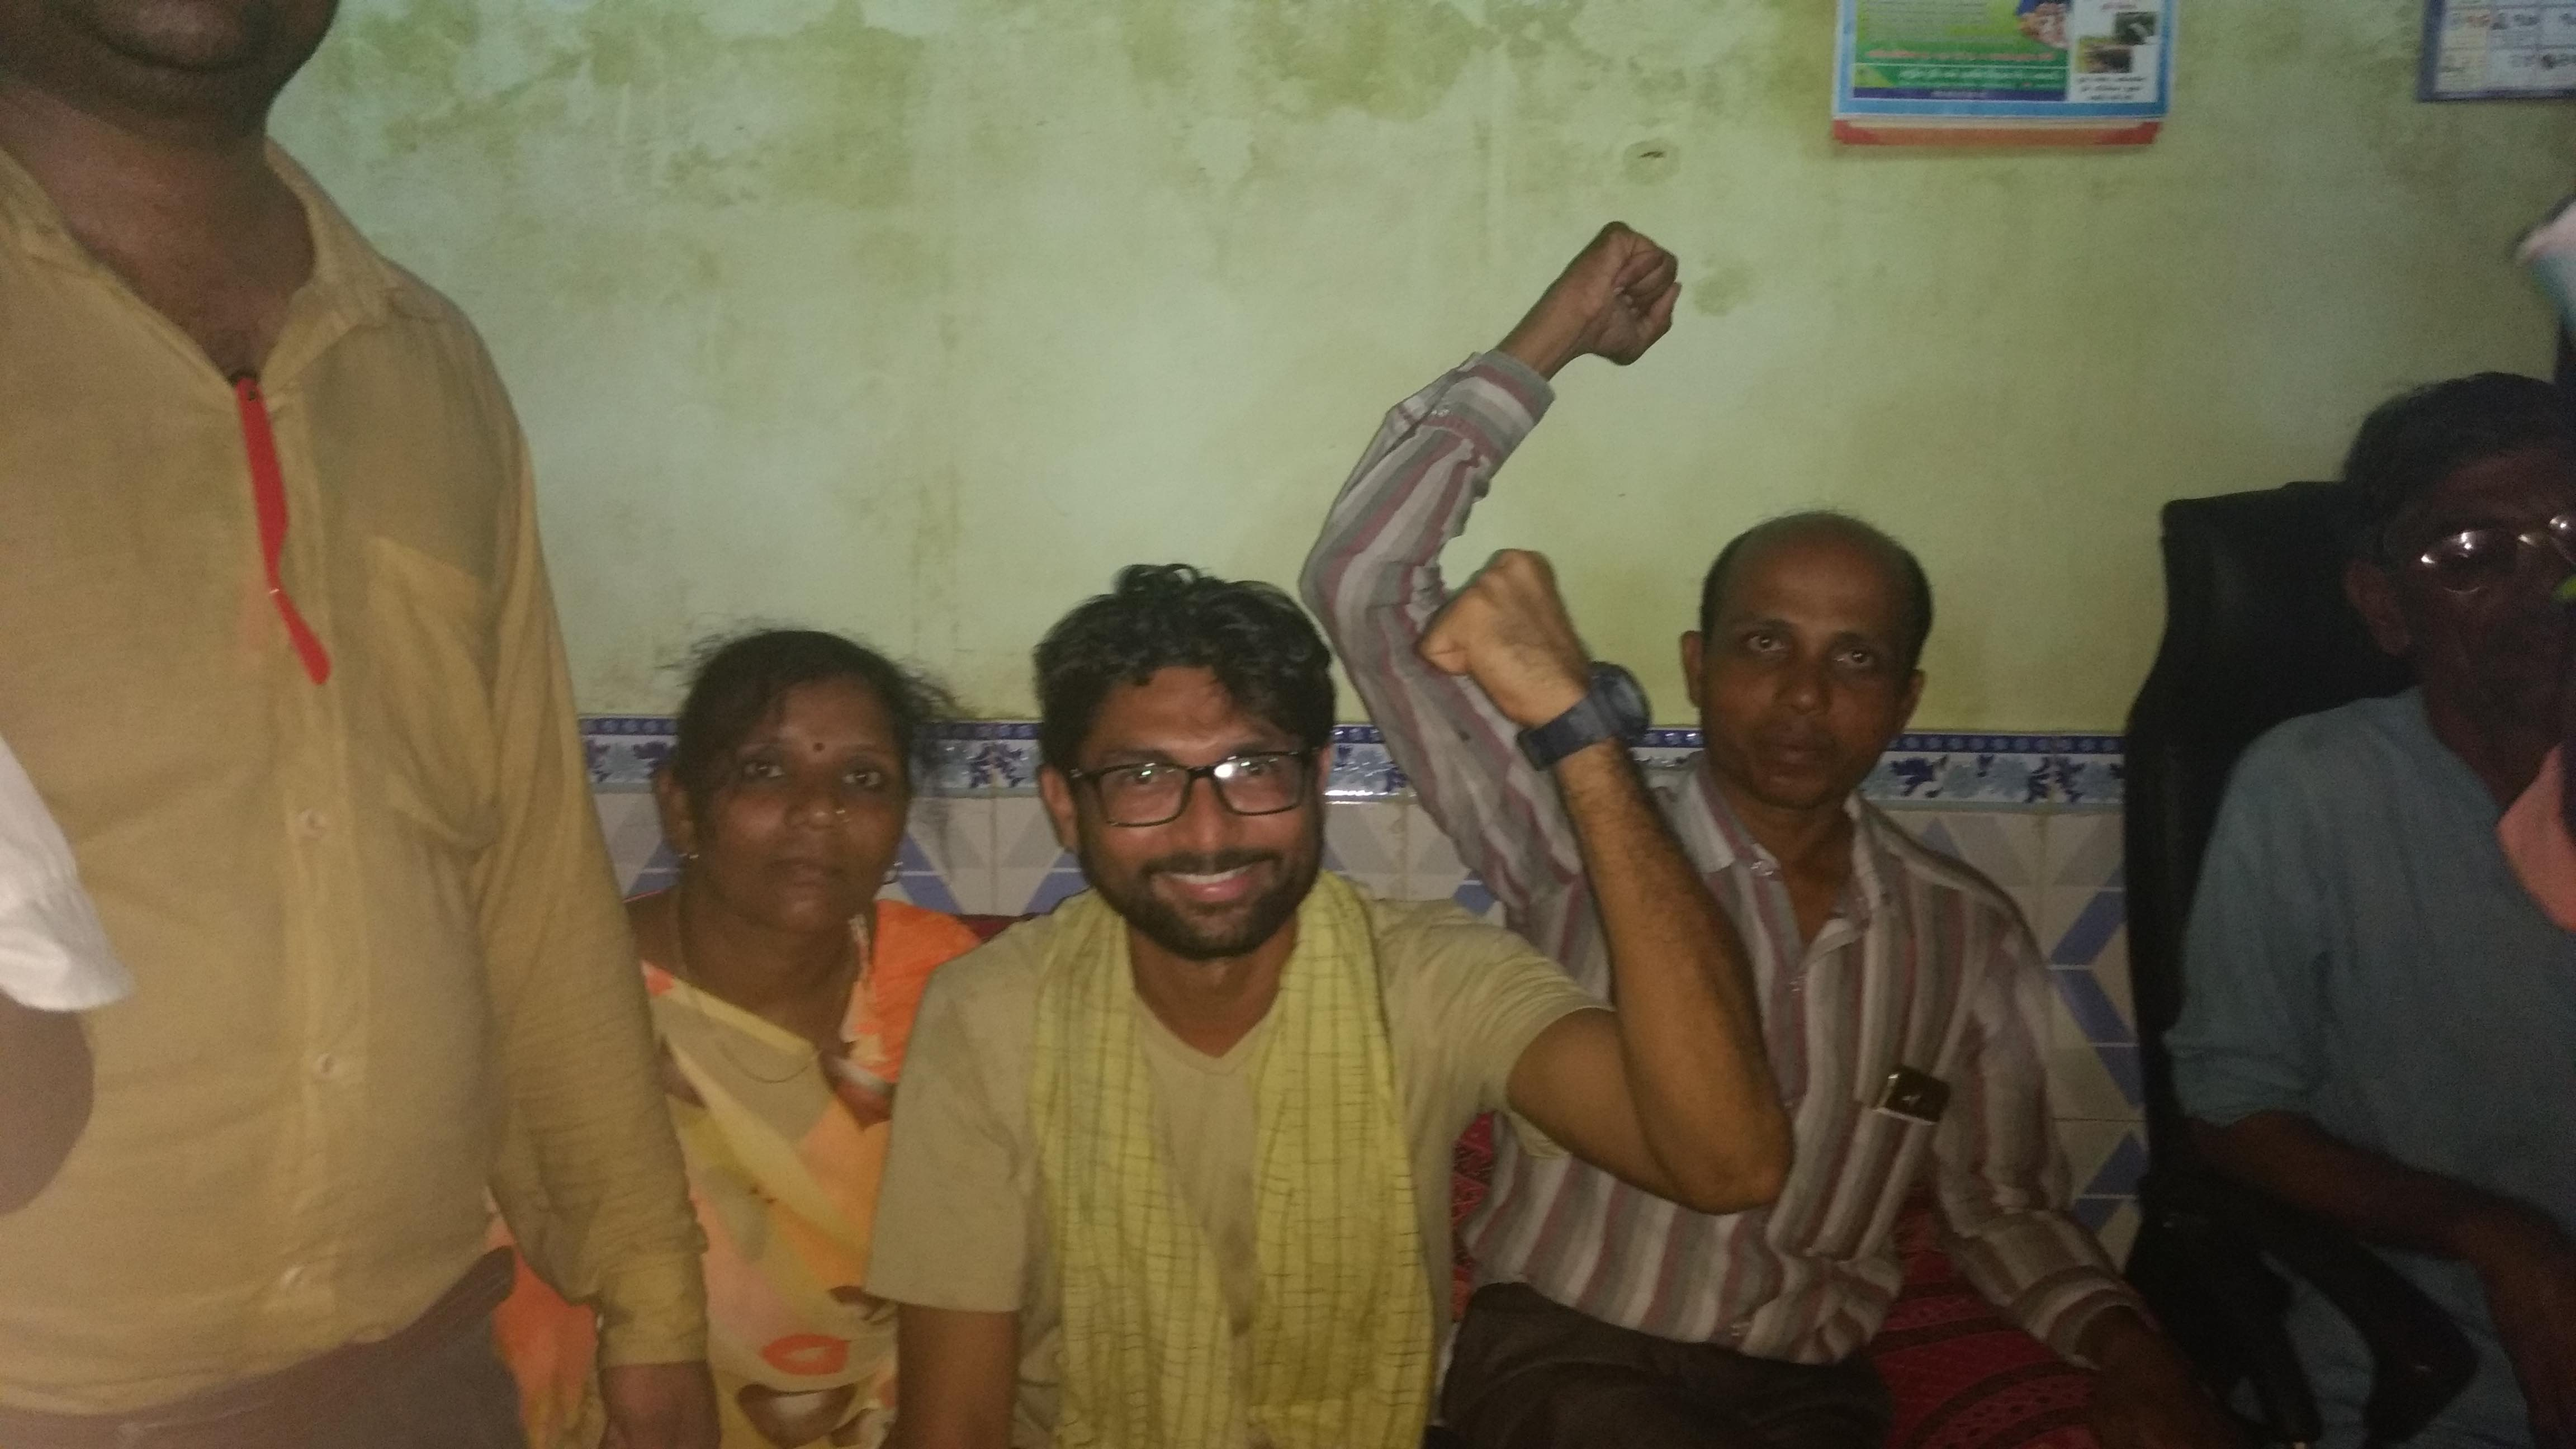 Jignesh Mevani and others participating in the Azadi Kooch. Credit: Damayantee Dhar